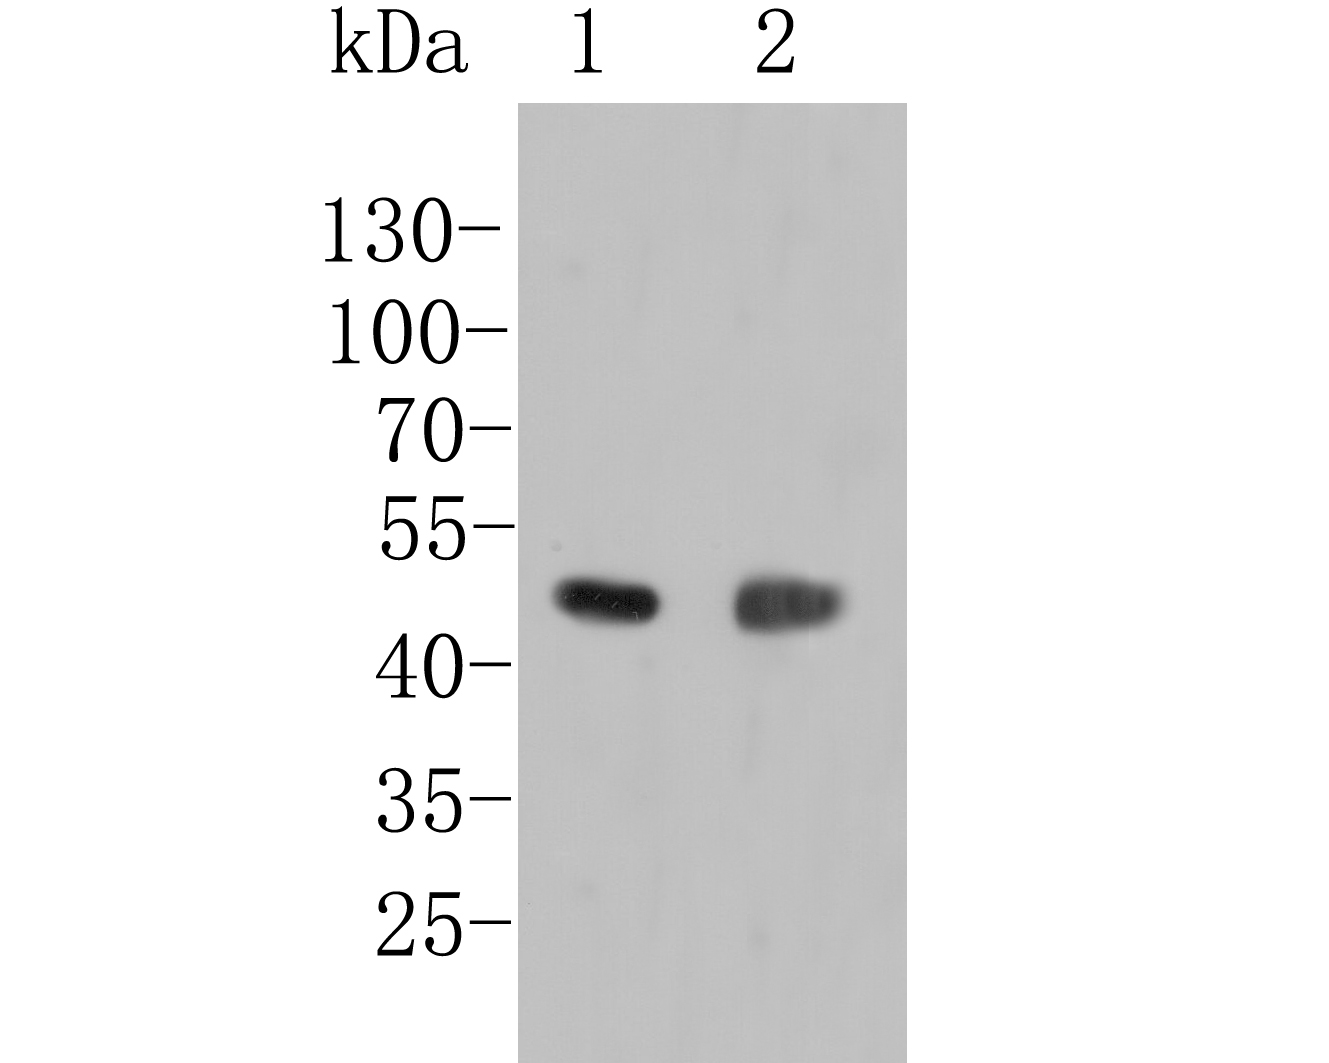 Western blot analysis of LIM1 on different lysates. Proteins were transferred to a PVDF membrane and blocked with 5% BSA in PBS for 1 hour at room temperature. The primary antibody (ER1902-83, 1/1000) was used in 5% BSA at room temperature for 2 hours. Goat Anti-Rabbit IgG - HRP Secondary Antibody (HA1001) at 1:5,000 dilution was used for 1 hour at room temperature.<br /> Positive control: <br /> Lane 1: A431 cell lysate <br /> Lane 2: Zebrafish tissue lysate